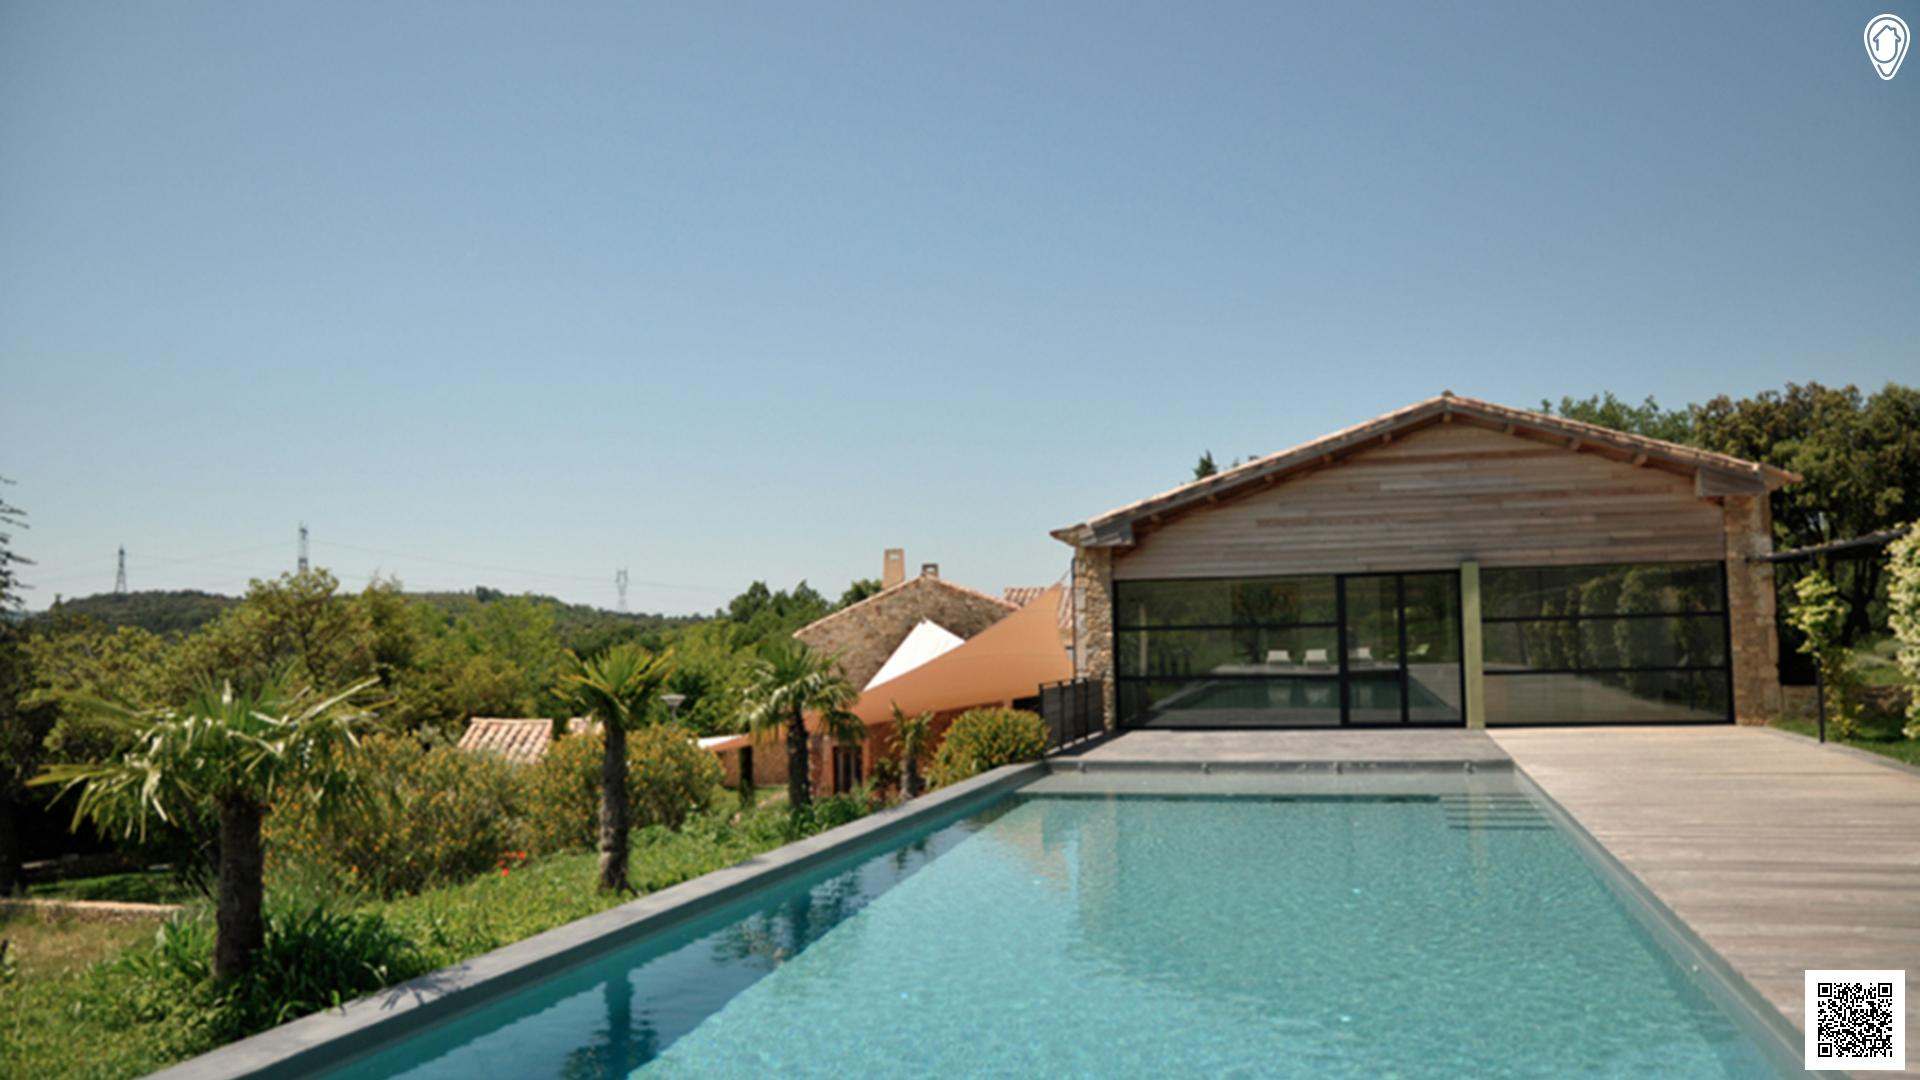 Location villa Gard - Le Mas de So - Look&Book